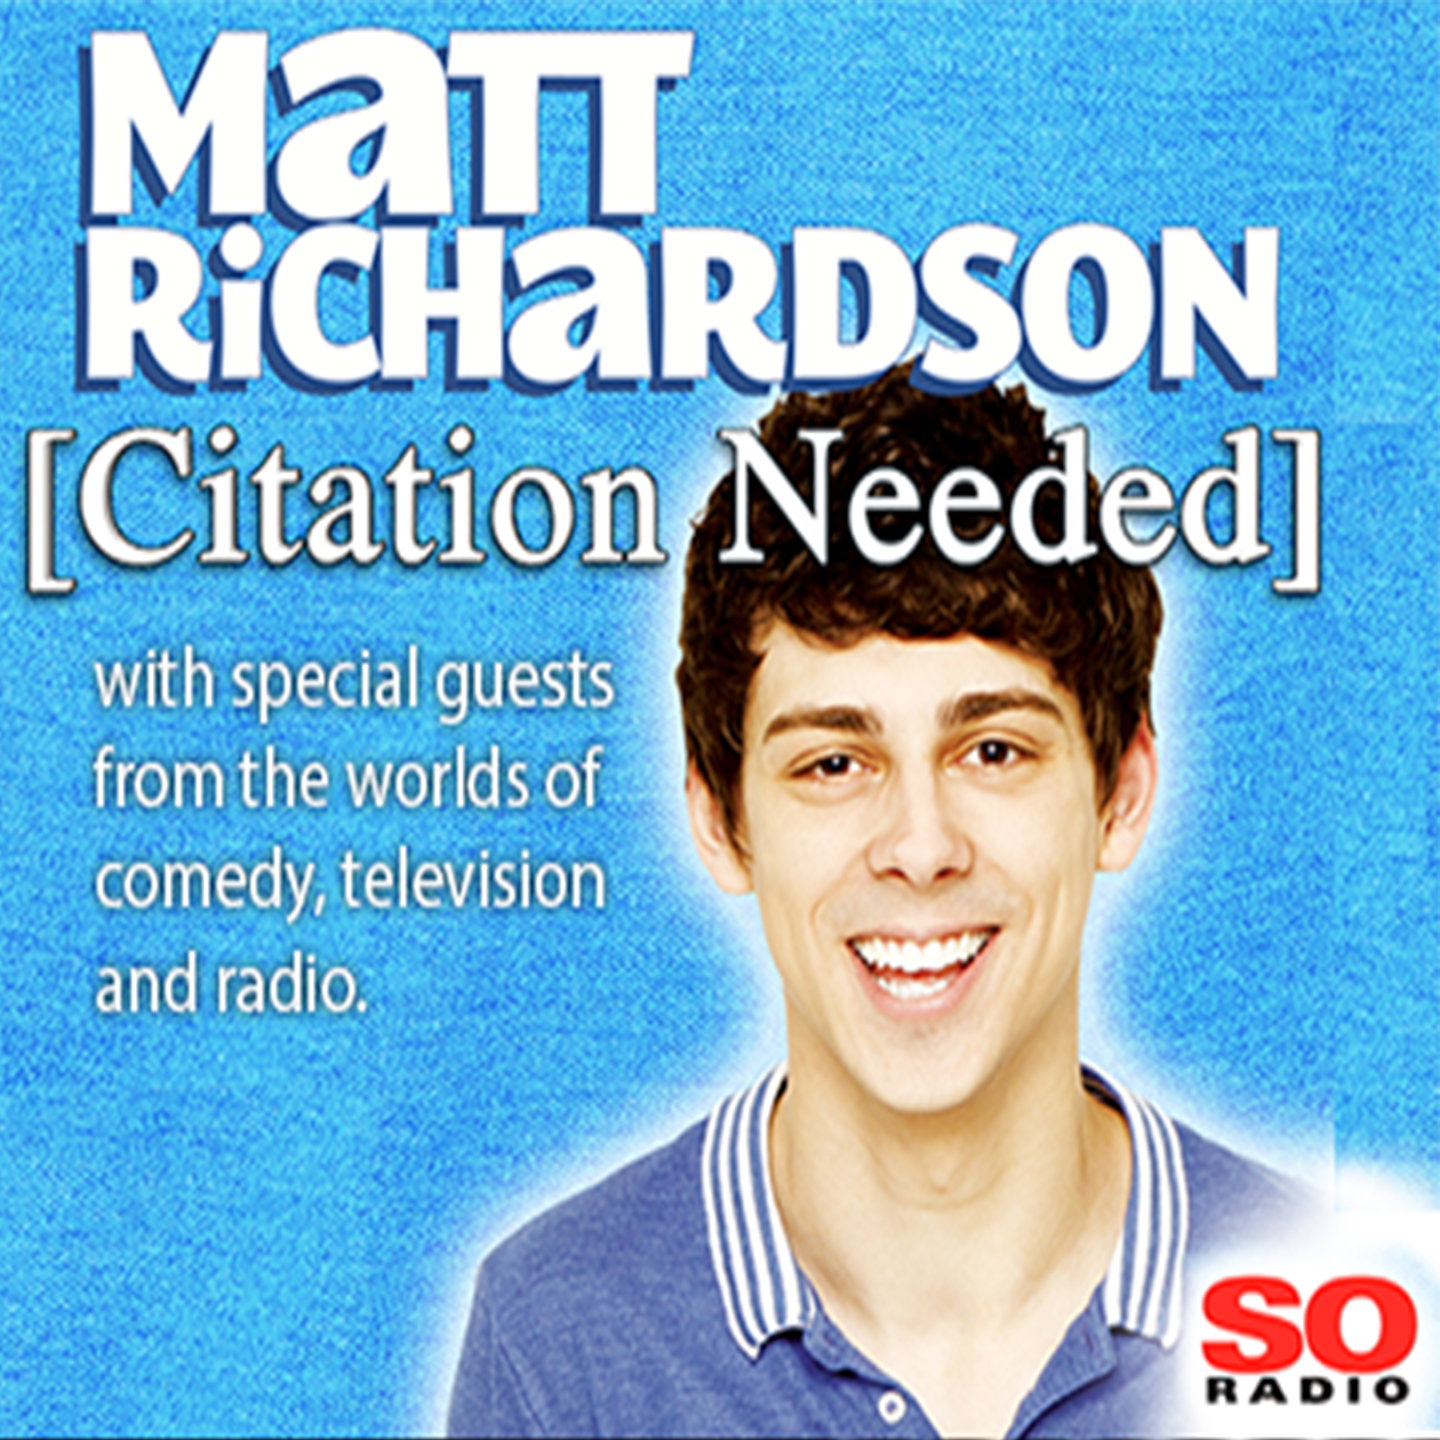 Matt Richardson's Citation Needed Series 2